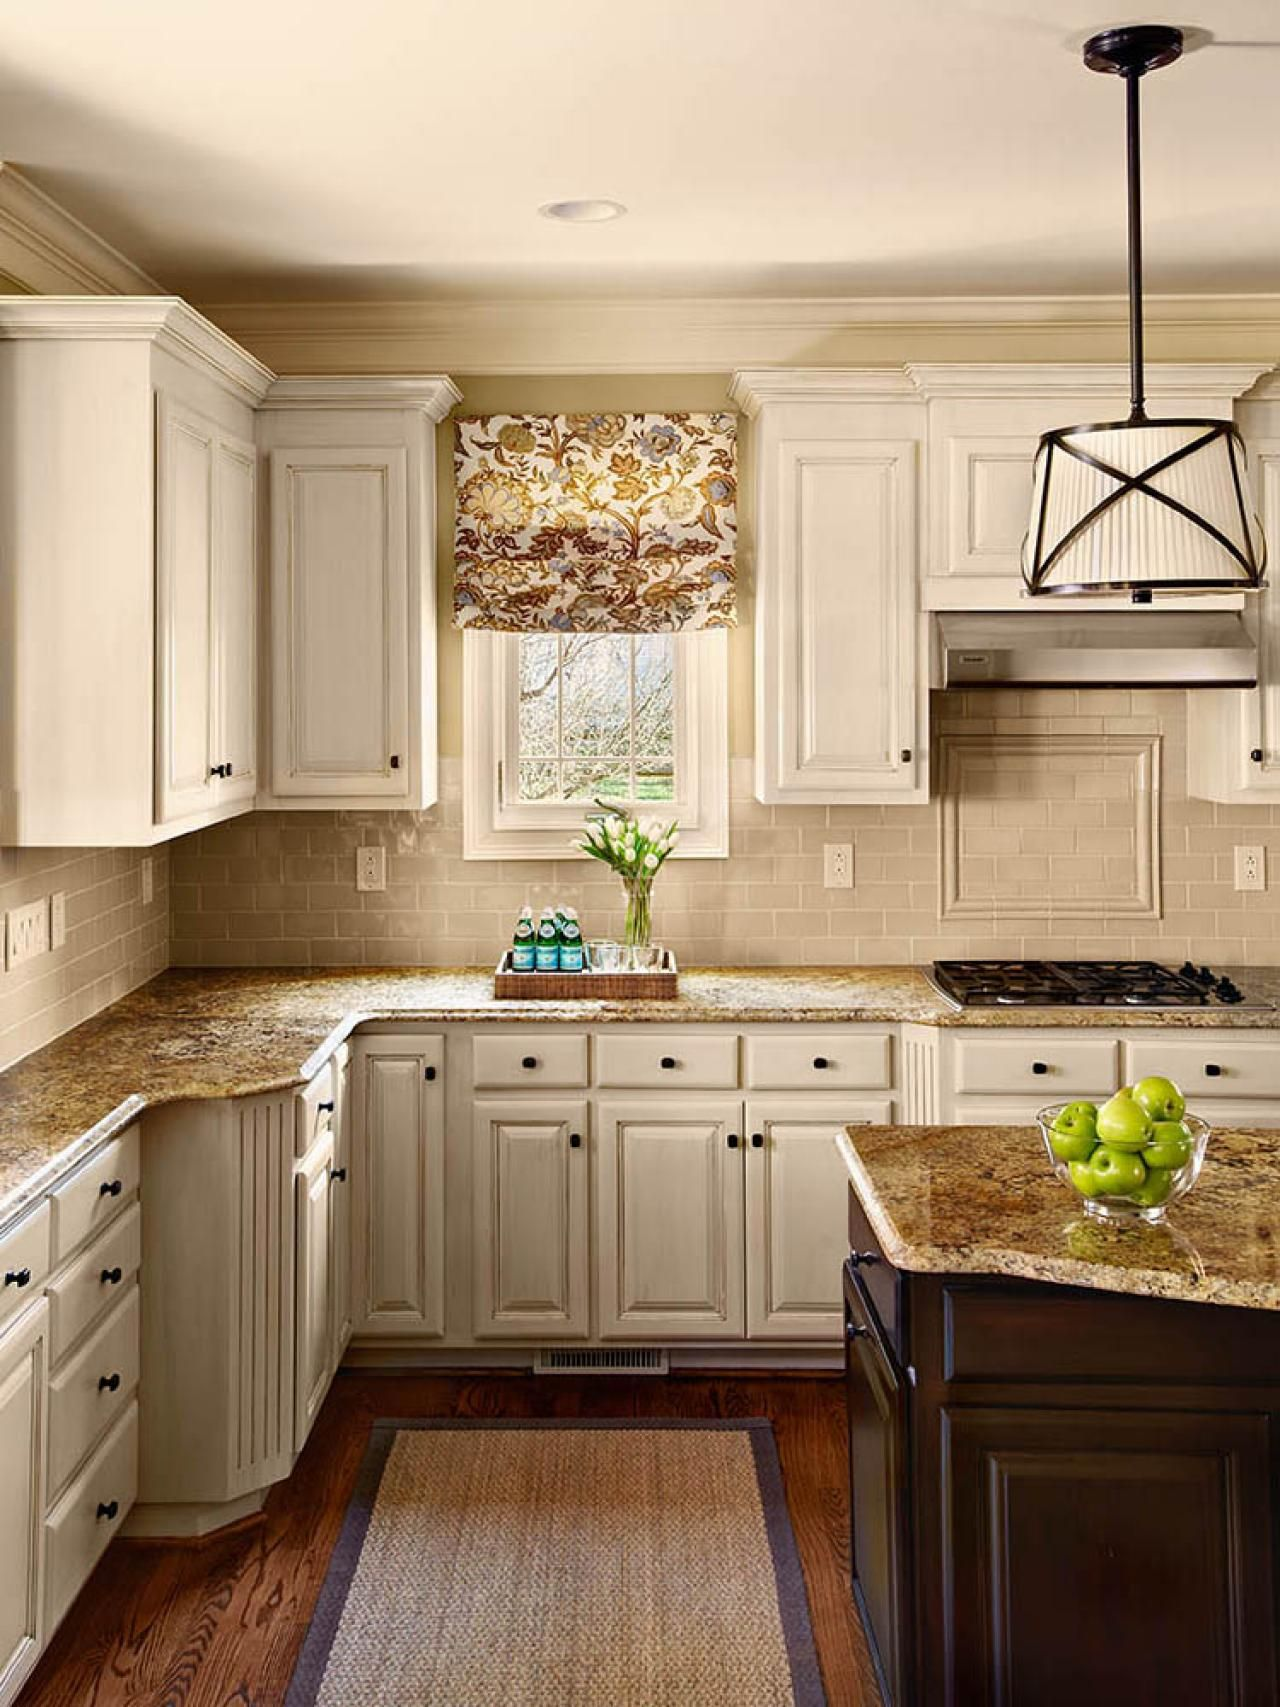 Refinishing Kitchen Cabinet Ideas Kitchen Cabinet Inspiration Resurfacing Kitchen Cabinets Hgtv Kitchens